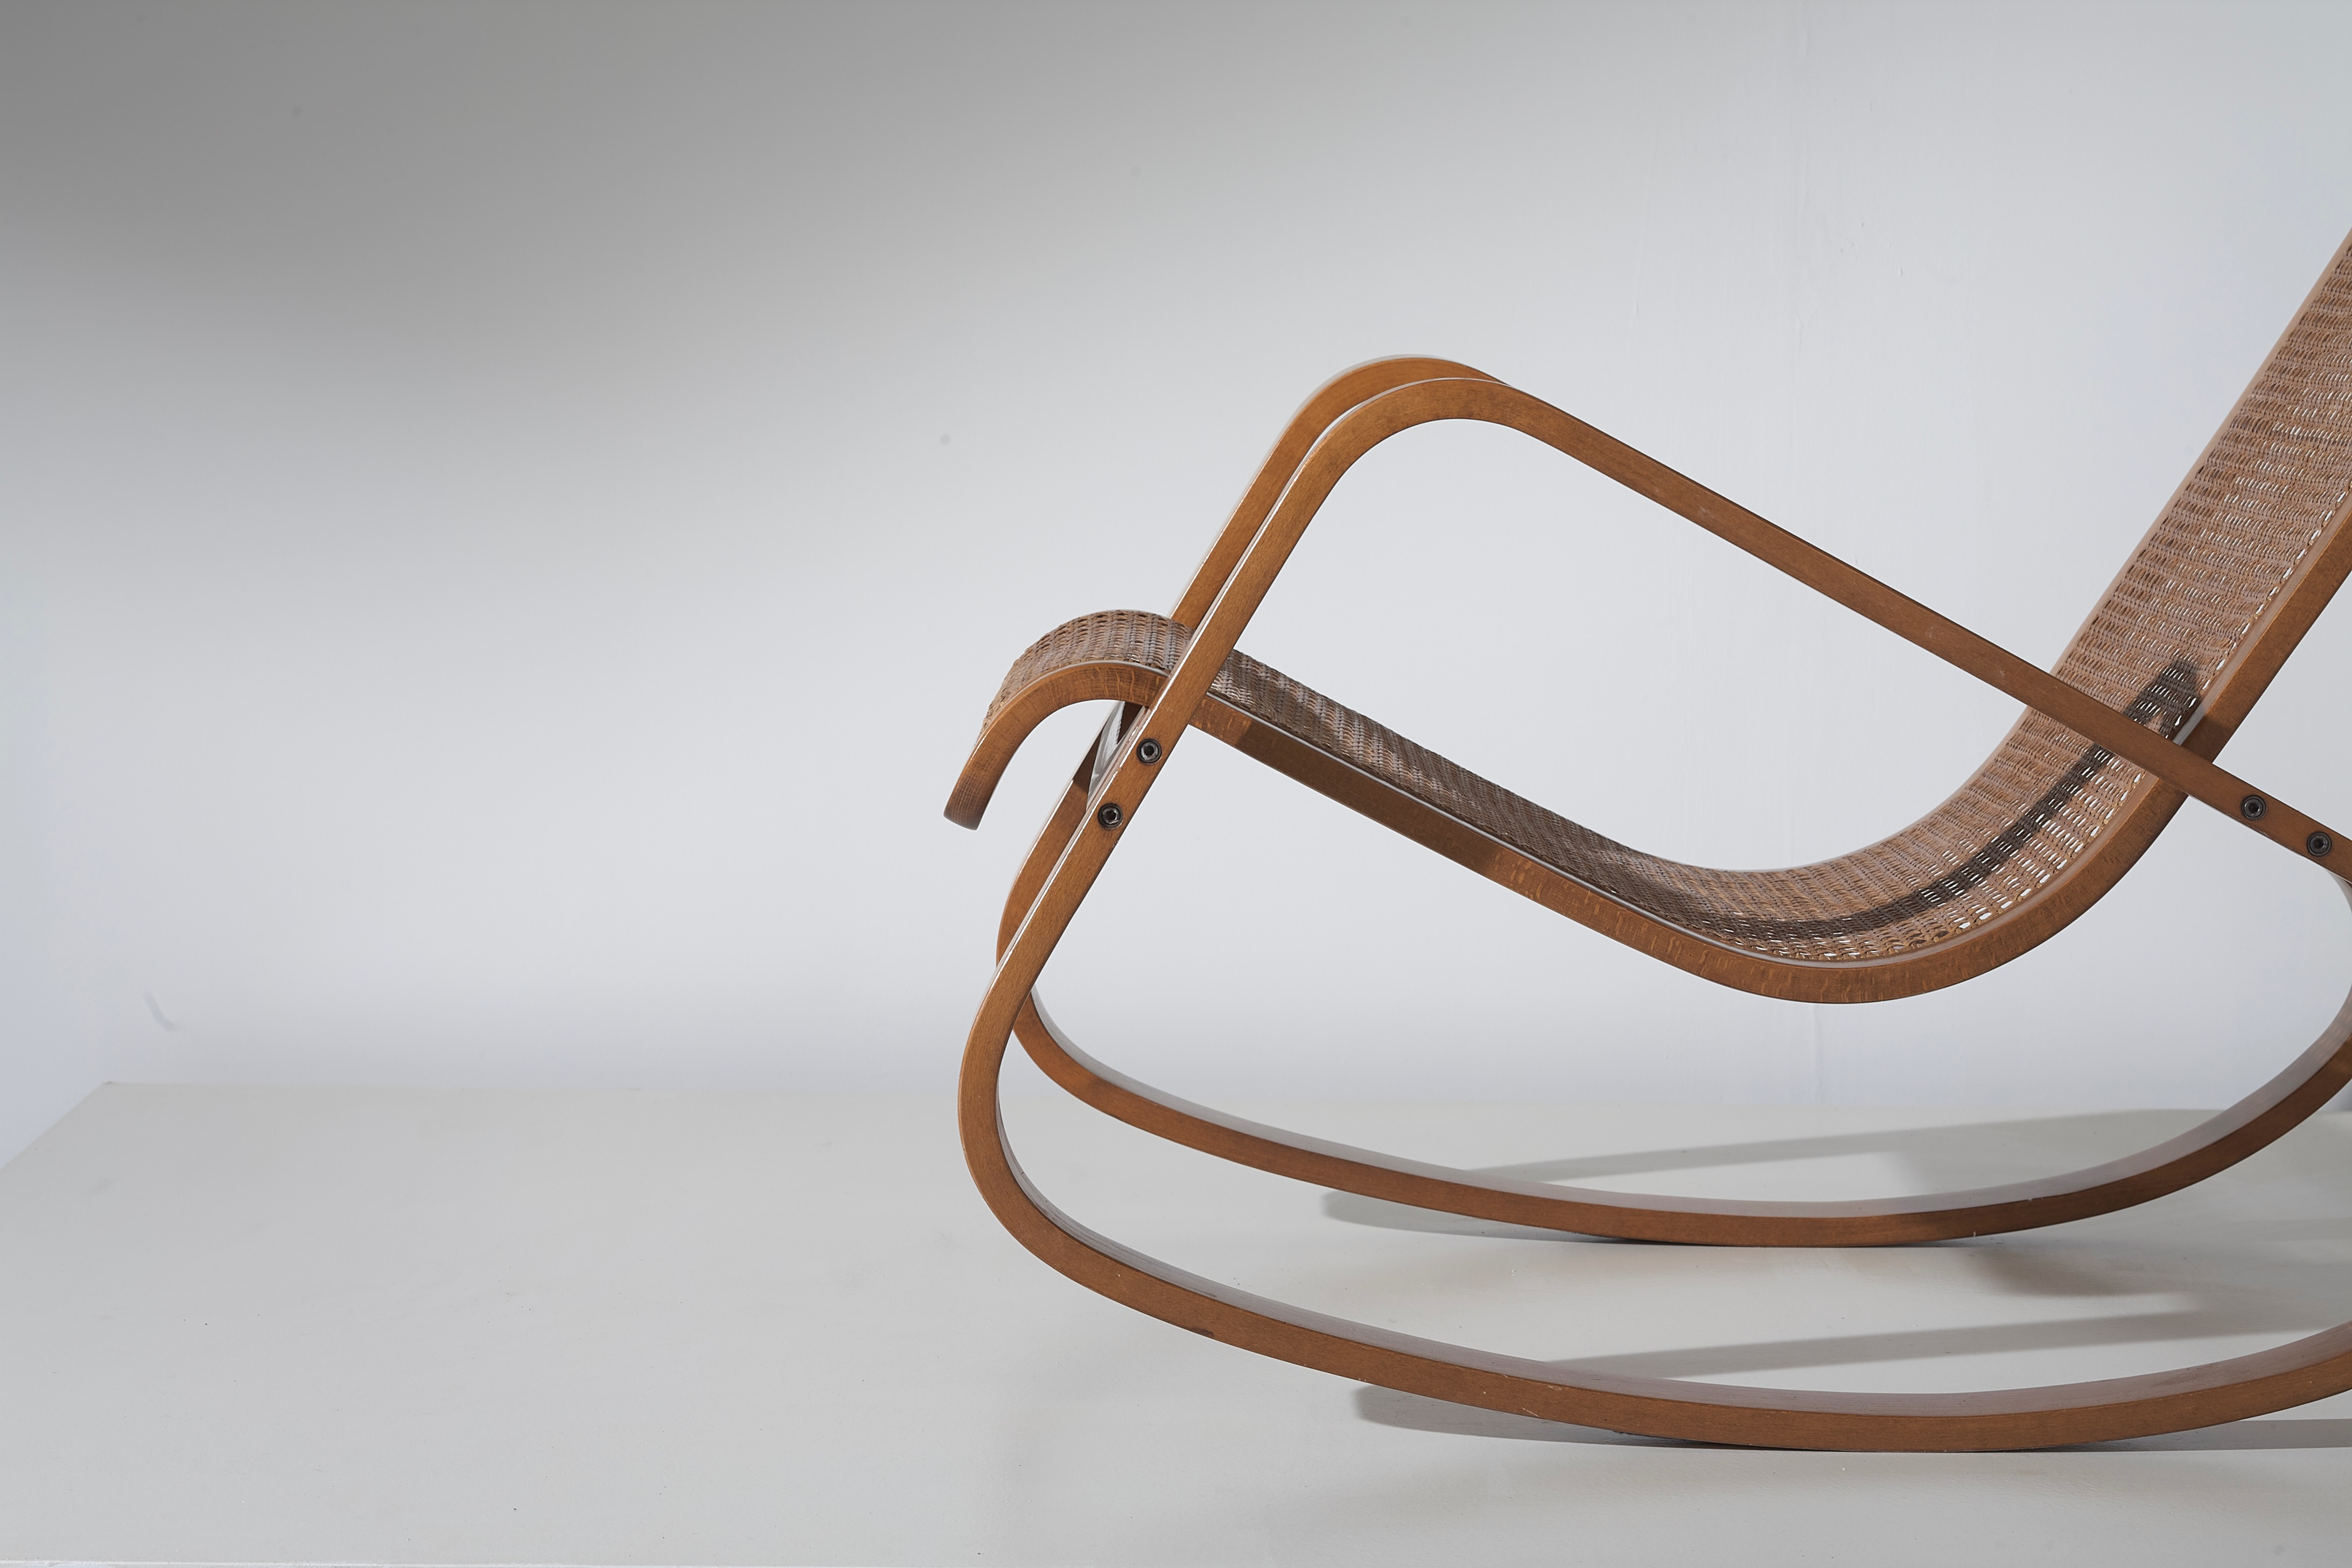 Dondolo rocking chair by Luigi Crassevig 1970s -3/4 front view